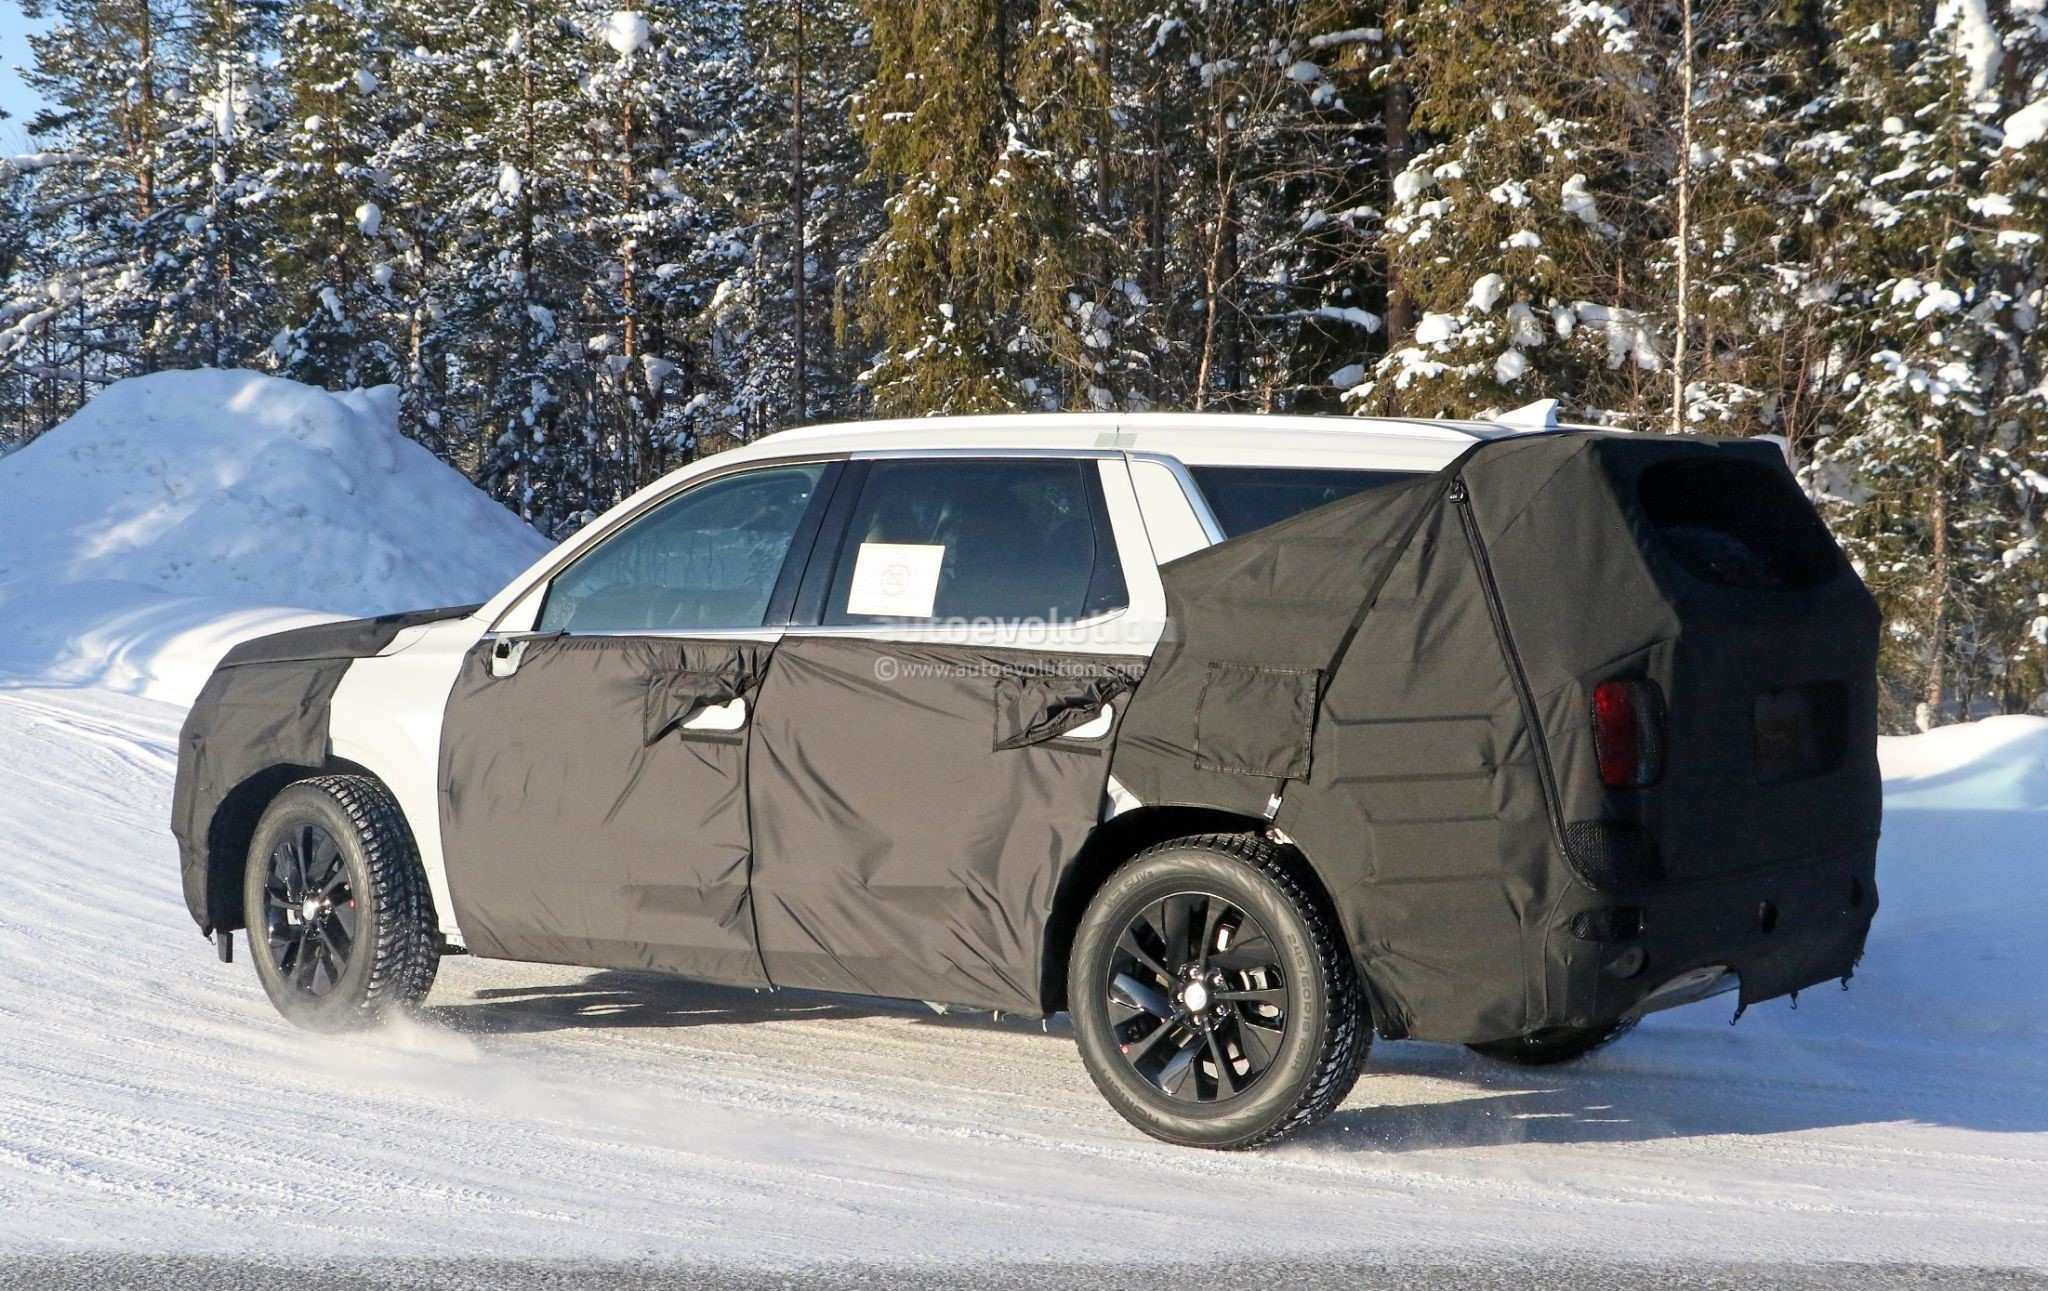 83 All New 2020 Volvo Suv Style for 2020 Volvo Suv